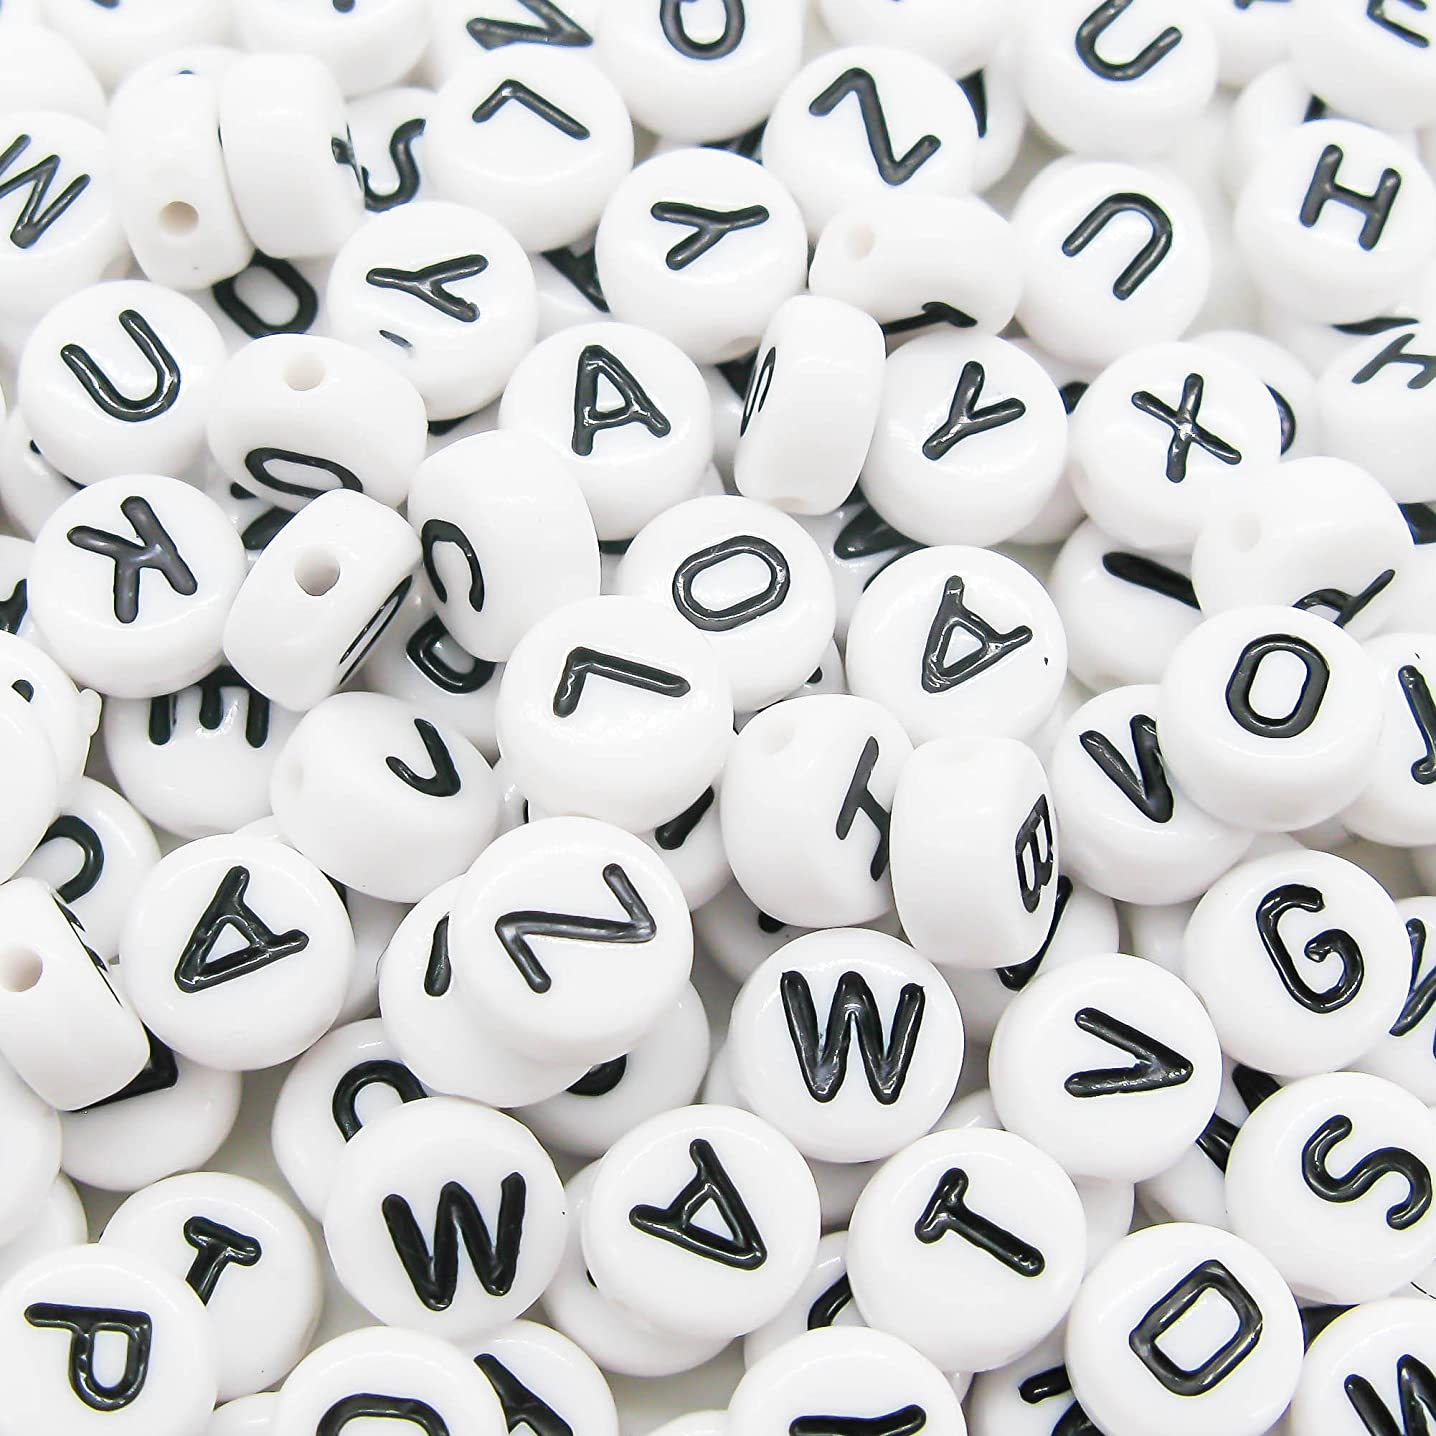 TOAOB 800Pcs 7mm White Round Acrylic Letter Beads for DIY